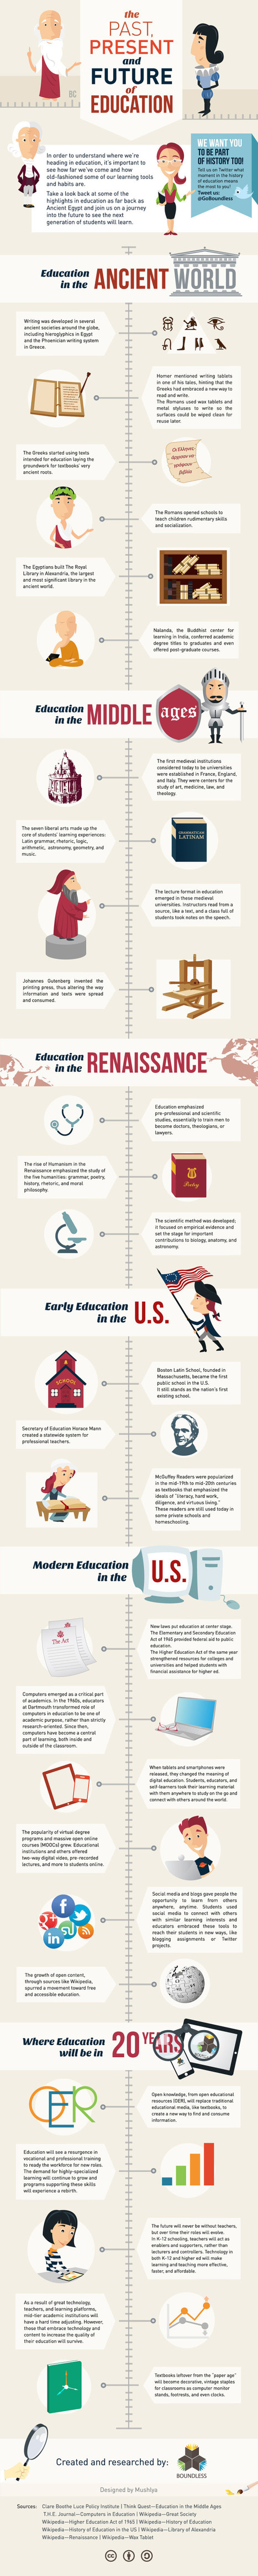 A Visual Guide To The Past, Present, And Future Of Education | INTELIGENCIA GLOBAL | Scoop.it